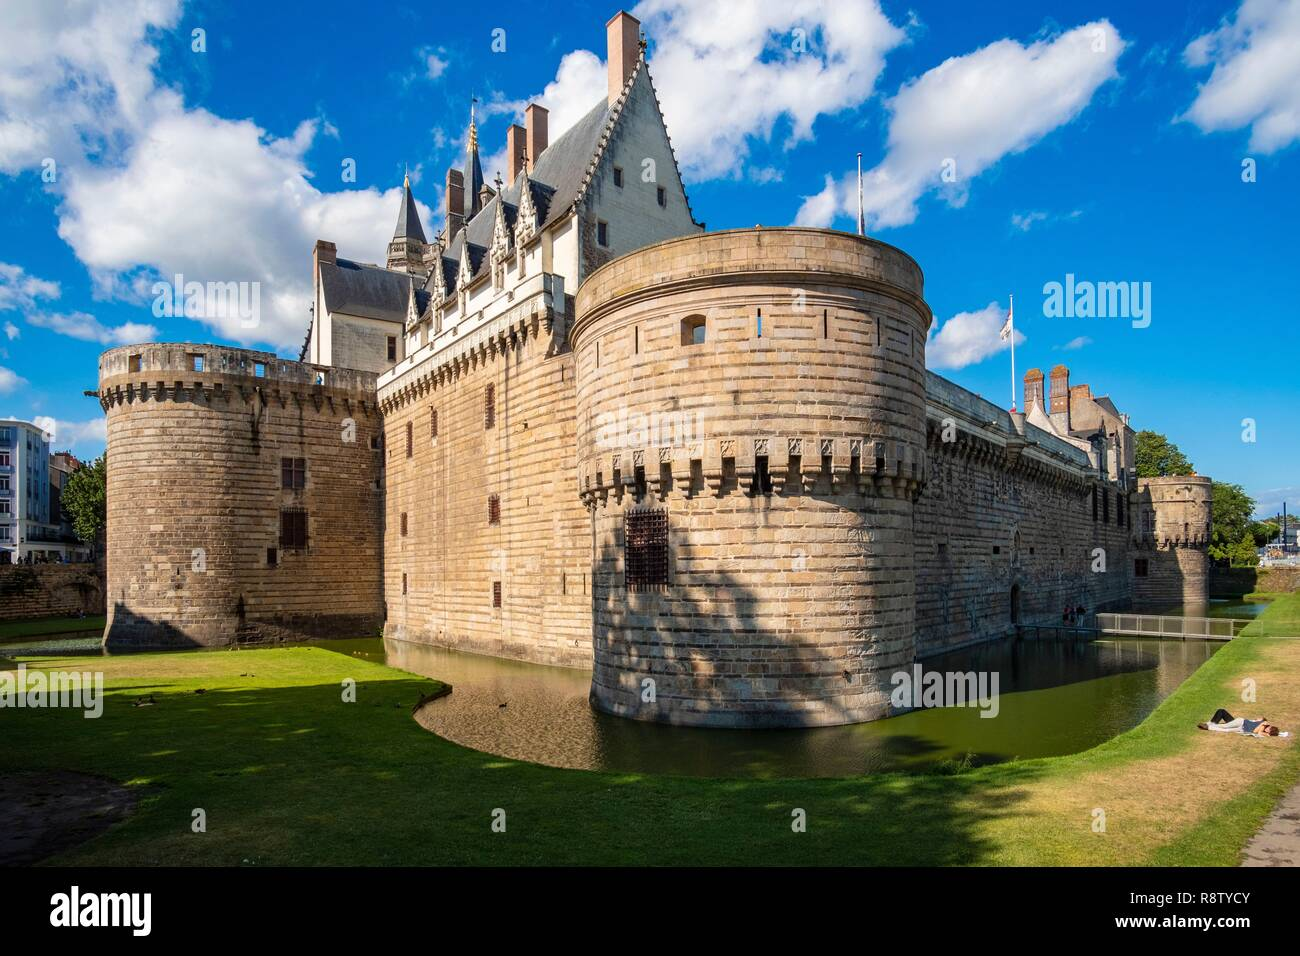 France, Loire Atlantique, Nantes, castle of the Dukes of Brittany and the moats - Stock Image